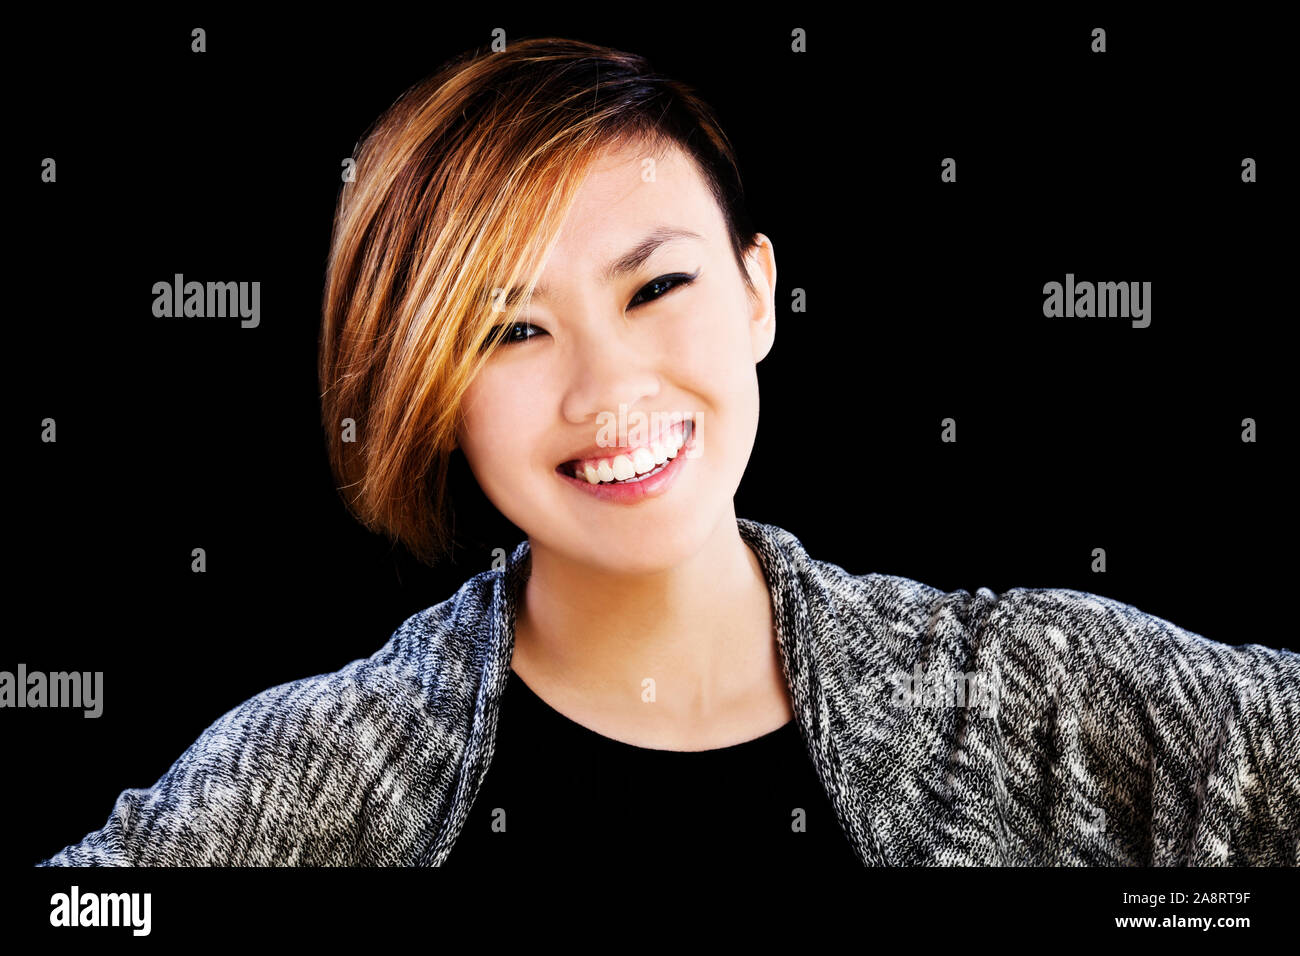 Horizontal Portrait Of Attractive Asian American Woman On Black Background Smiling Short Hair Stock Photo